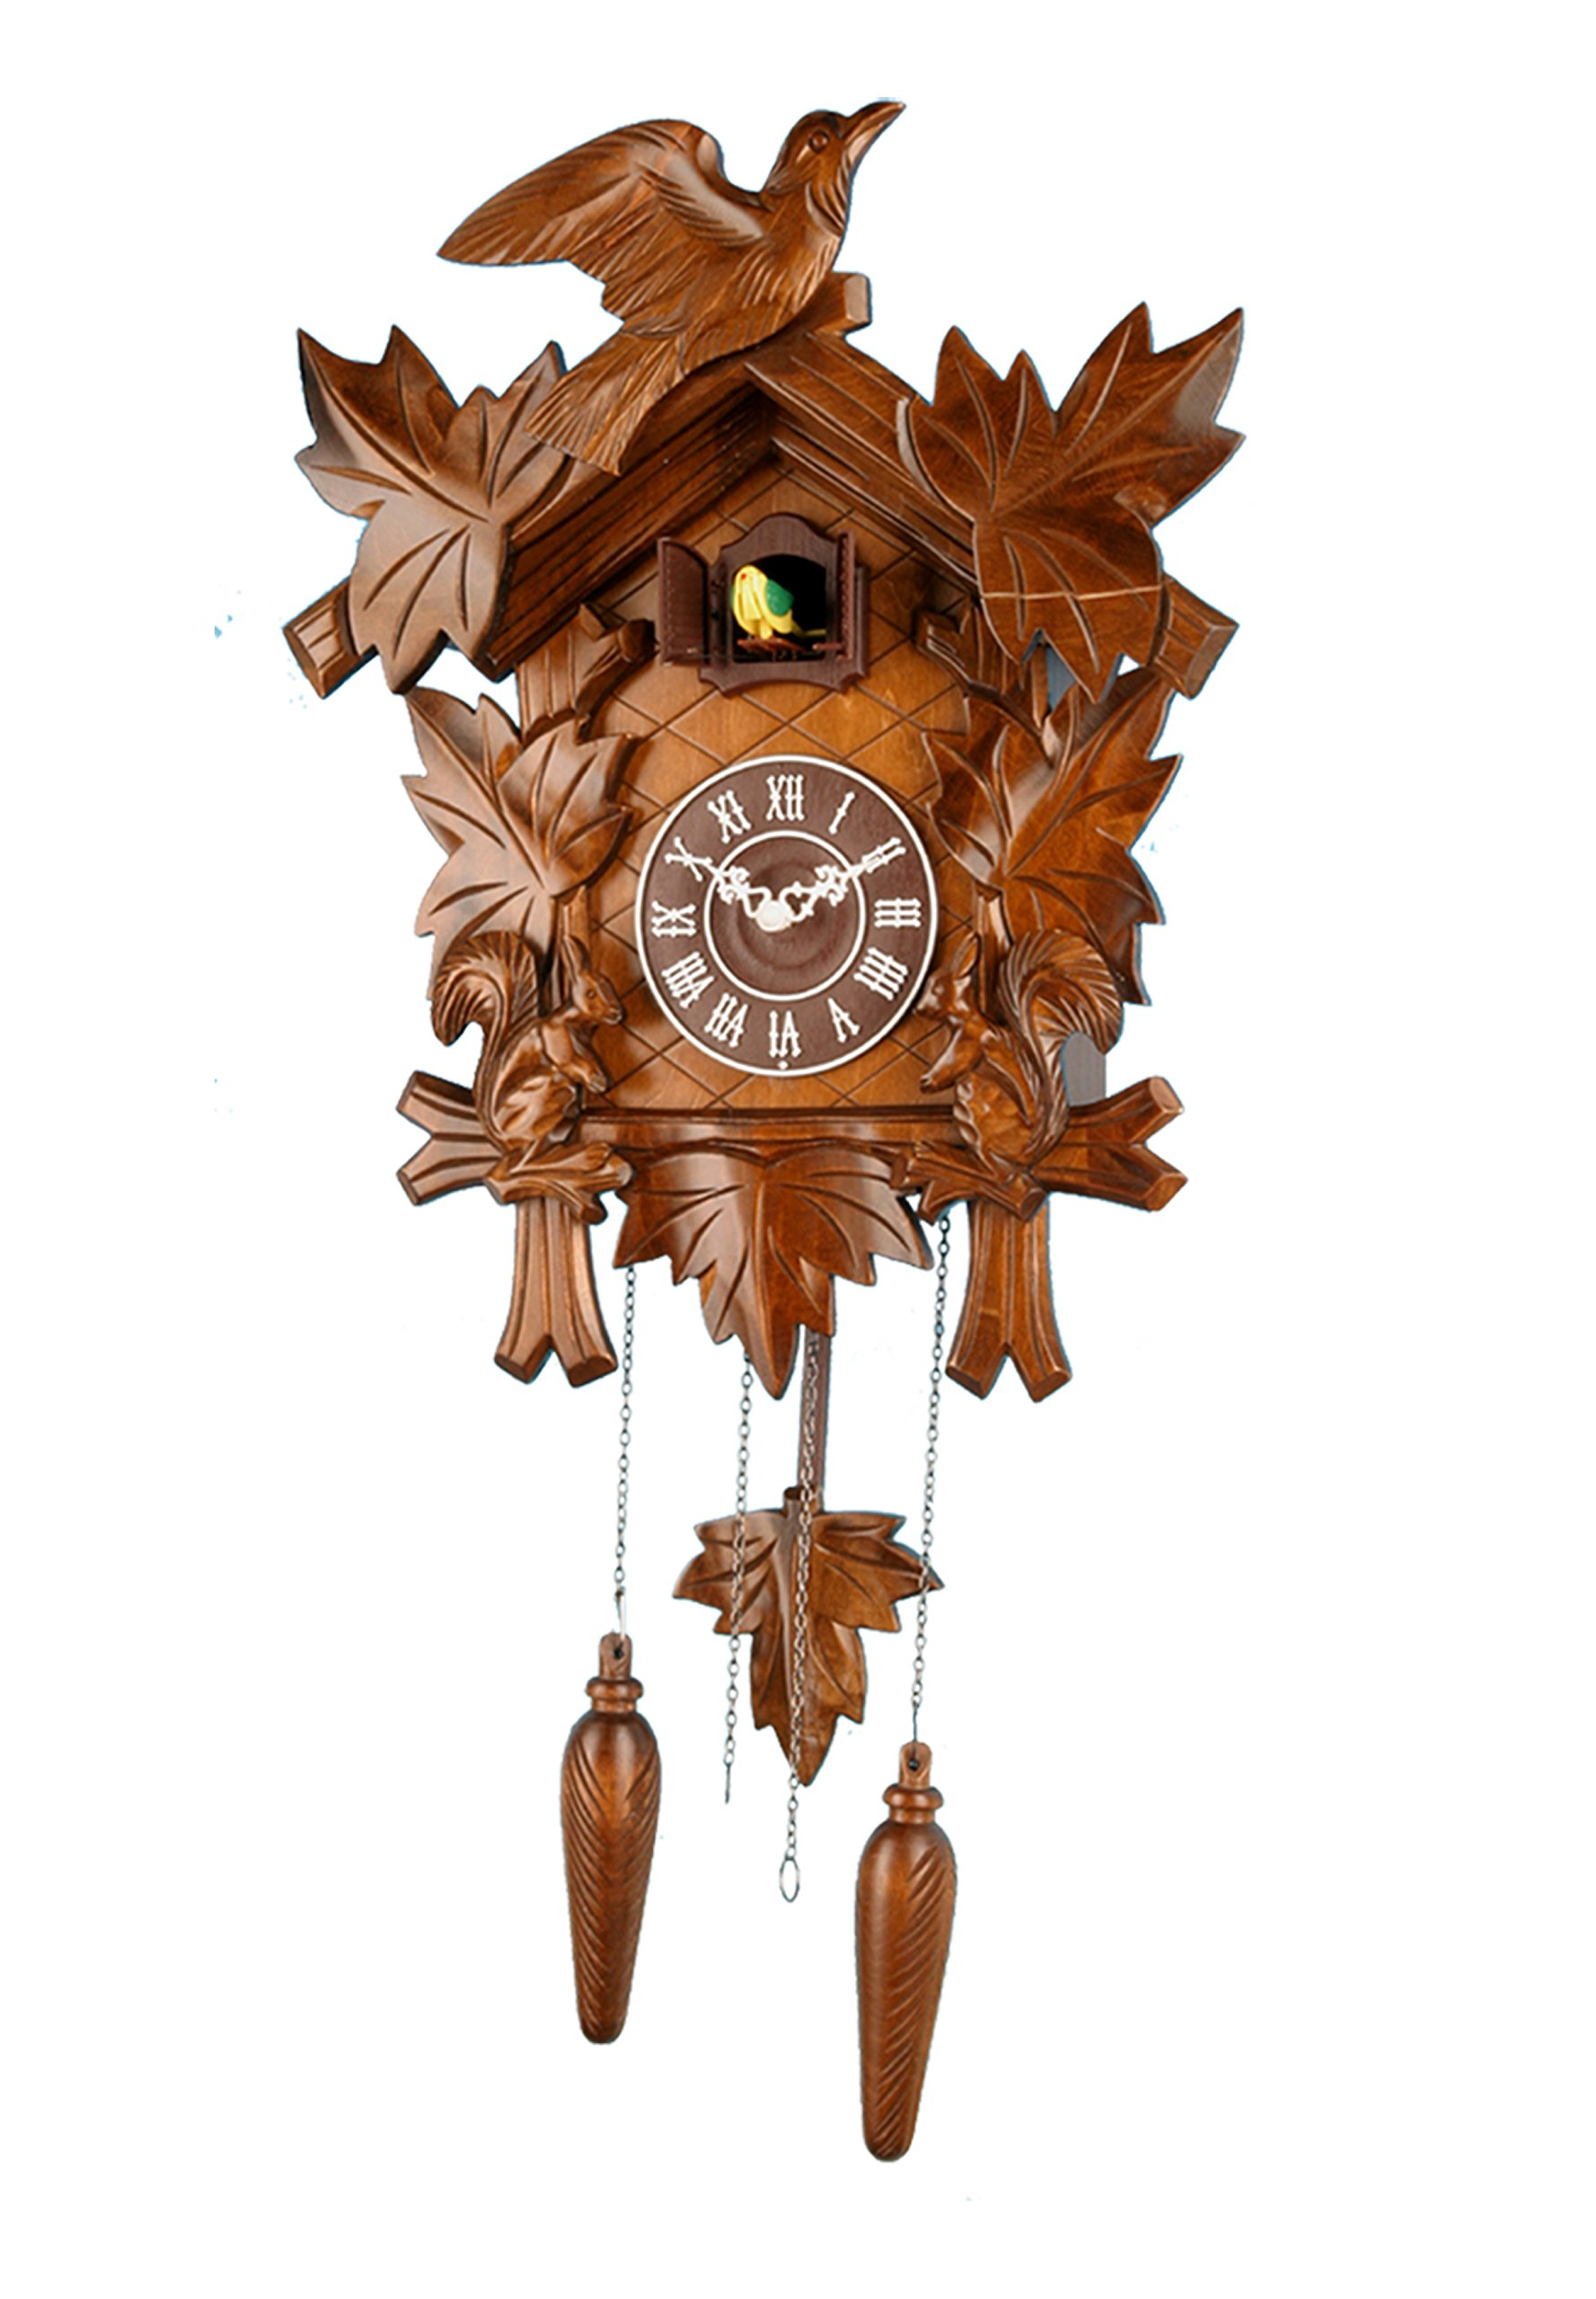 13-inch Classic Forest Birds Cuckoo Clock, Home Decor, Specialty Quality, Quartz Timepieces - C00193